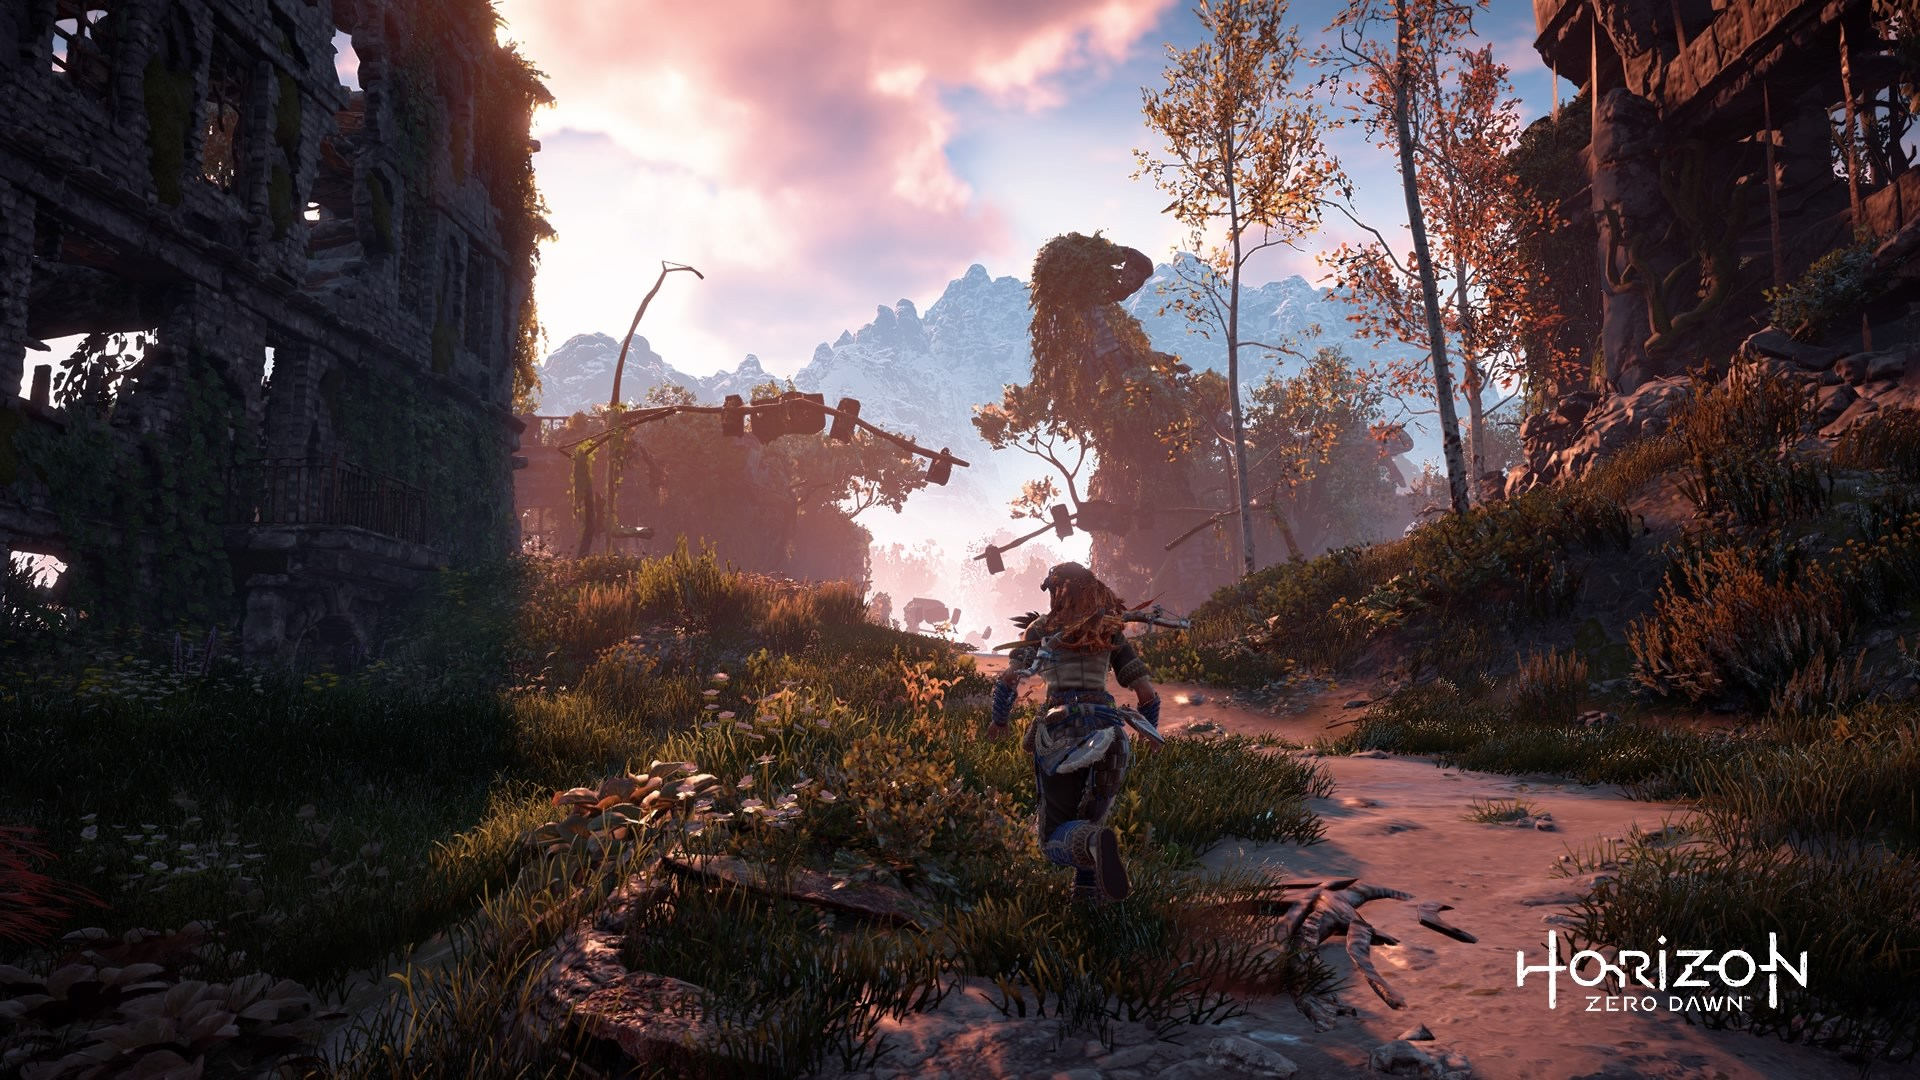 horizon-zero-dawn-review-6.jpg